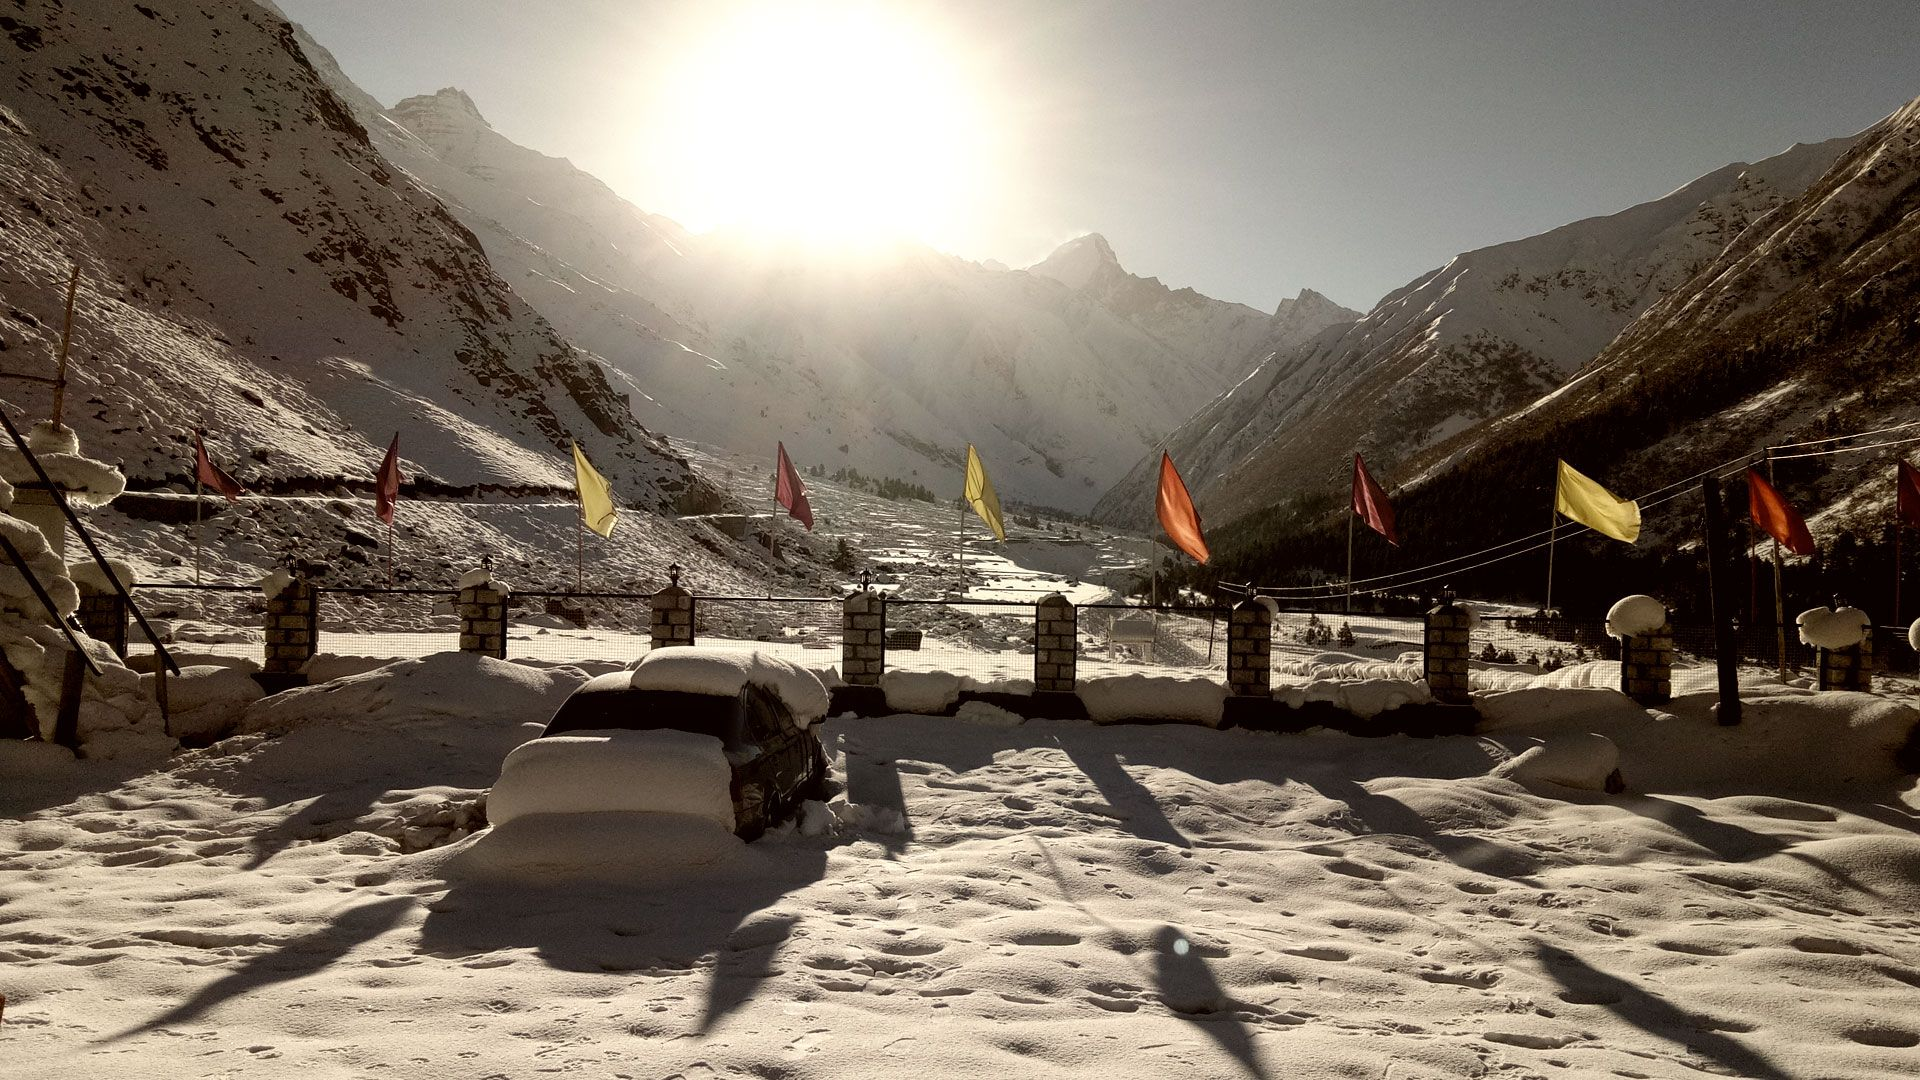 Chitkul - The diadem of Himachal